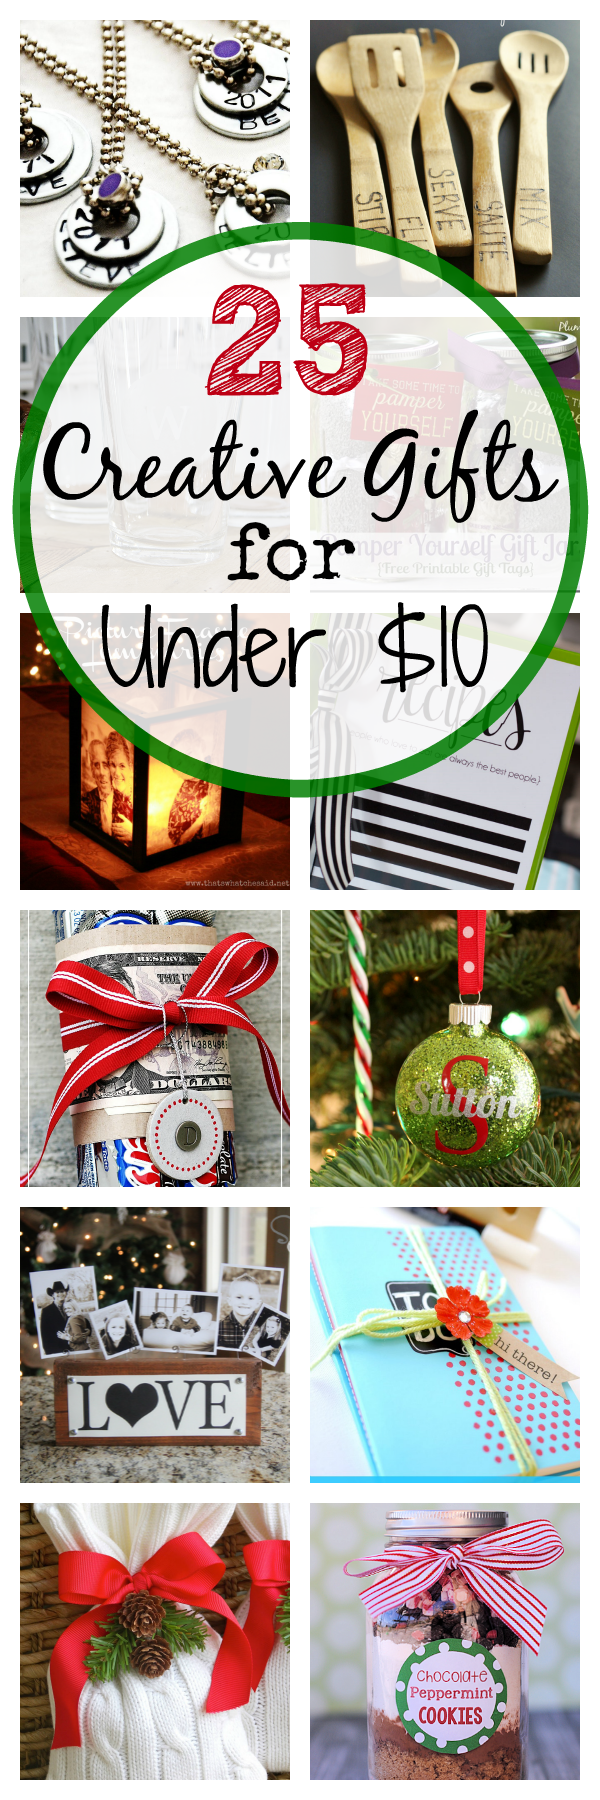 Superb 25 Creative And Cheap Christmas Gifts That Cost Less Than $10 These Cute Christmas  Gift